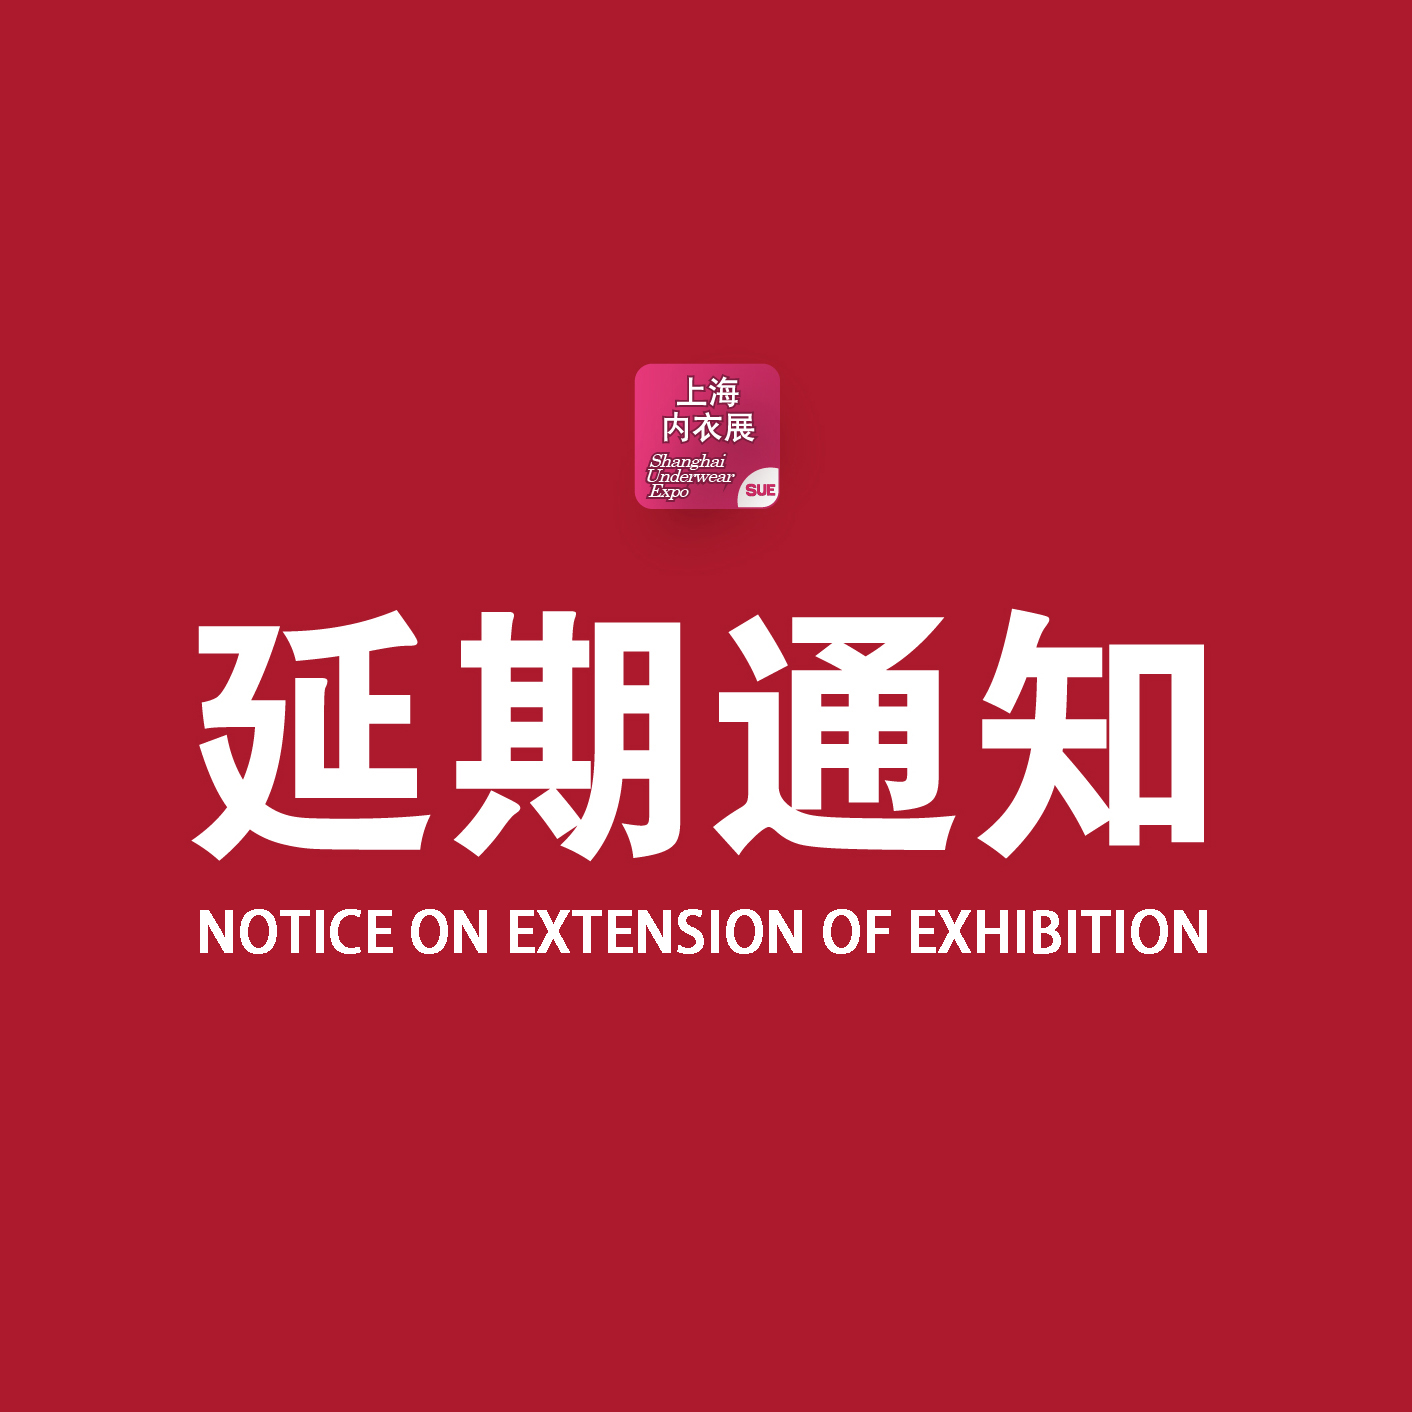 NOTICE ON EXTENSION OF EXHIBITION